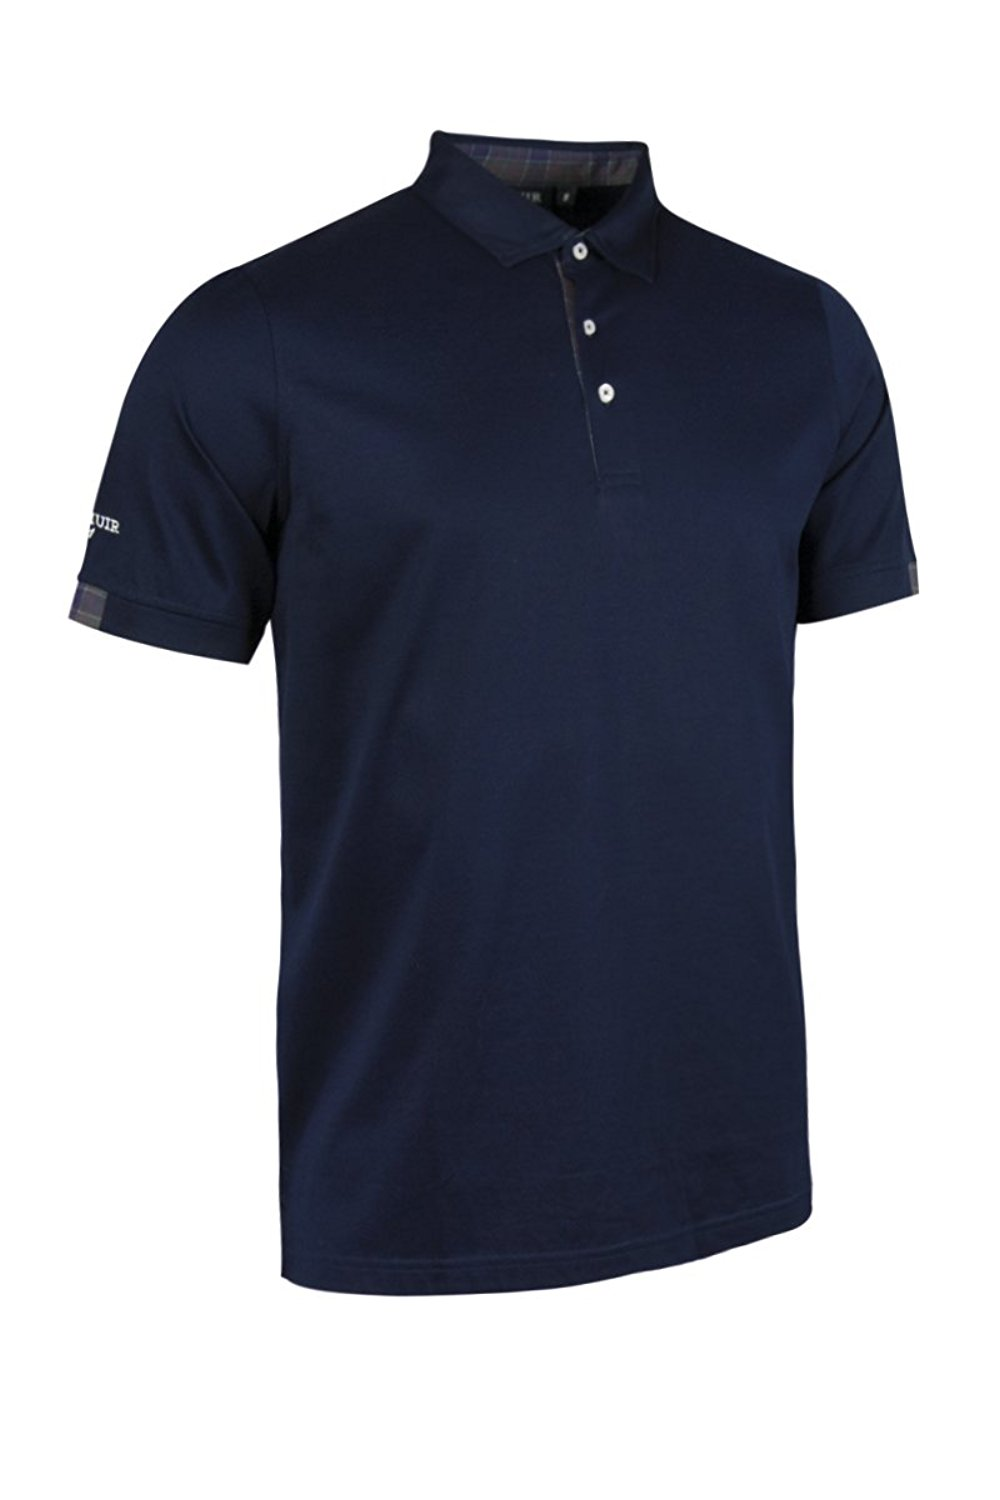 Bespoke Golf Polo Shirts Bcd Tofu House